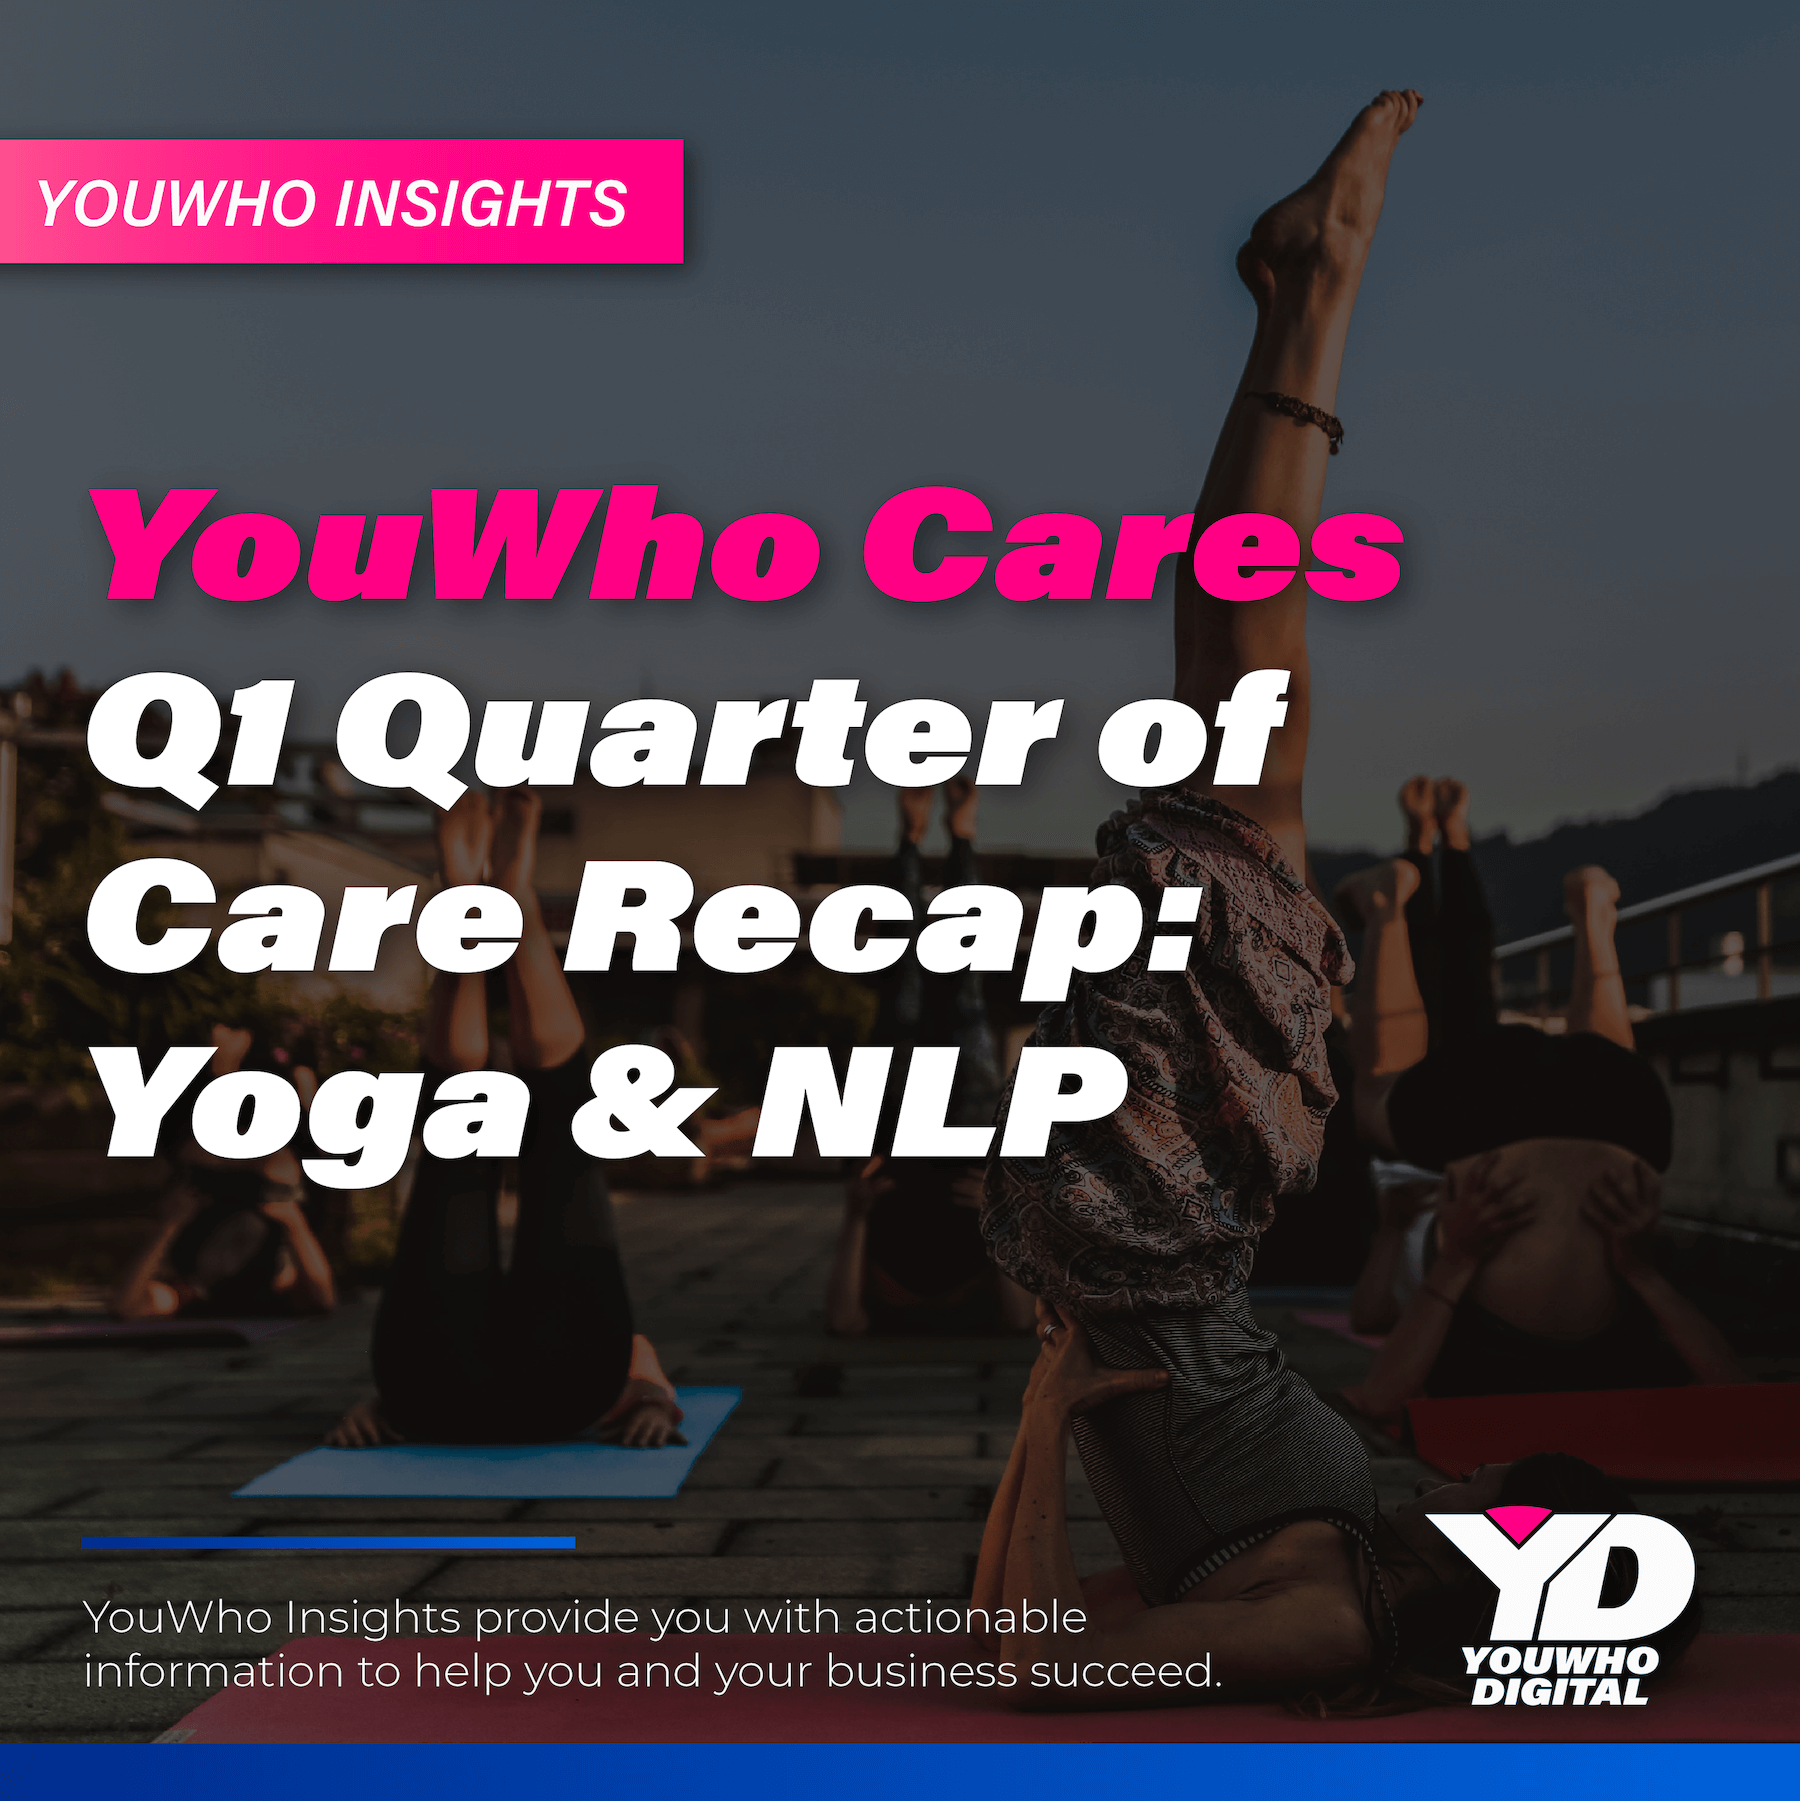 Youwho Cares NLP Yoga